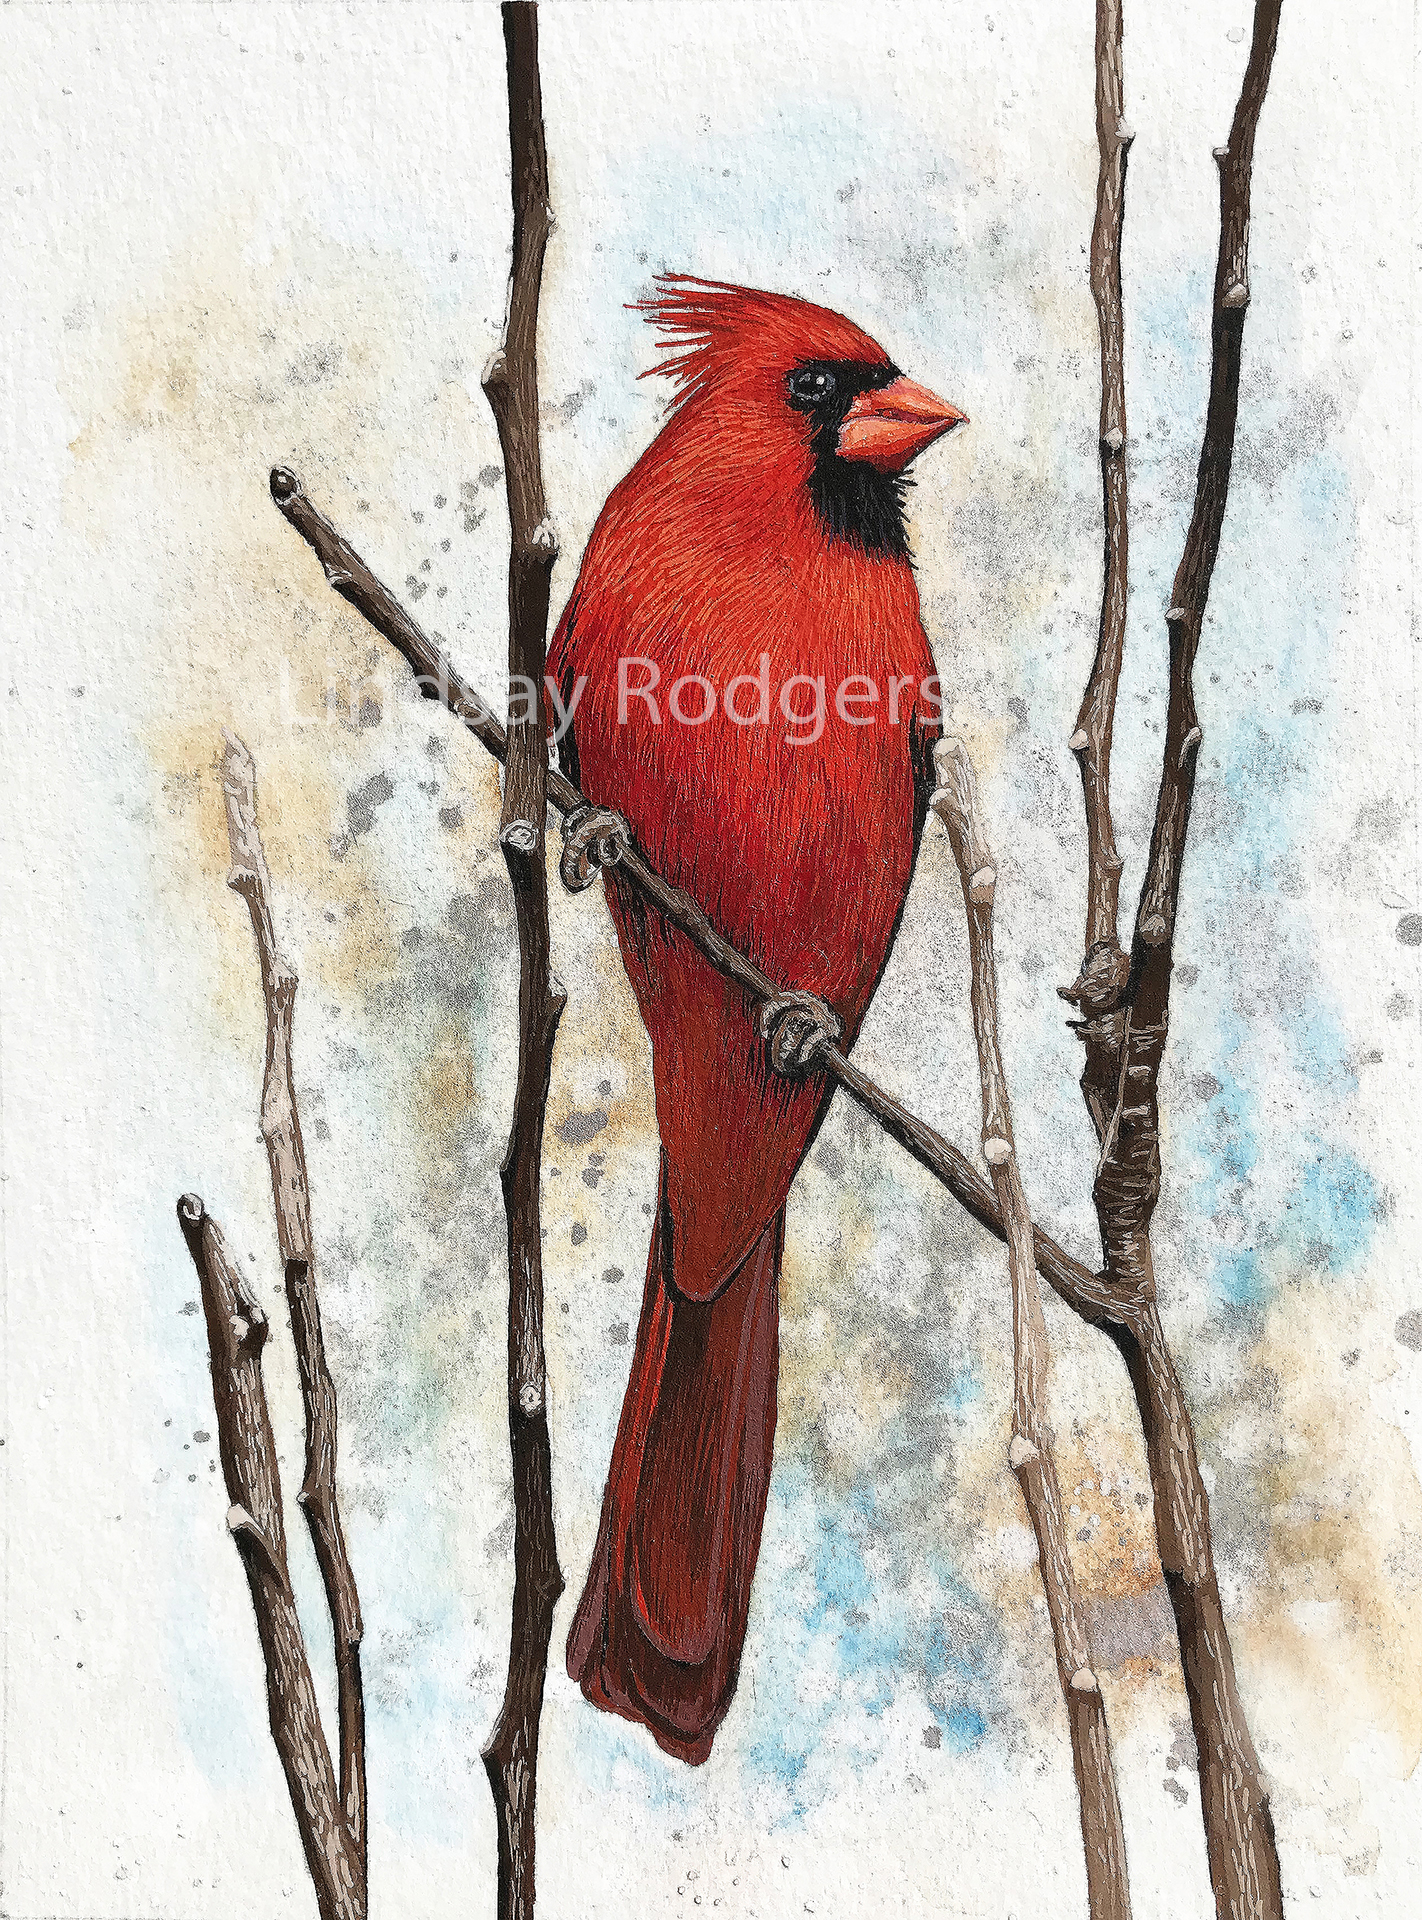 Cardinal with branches etsy.jpg